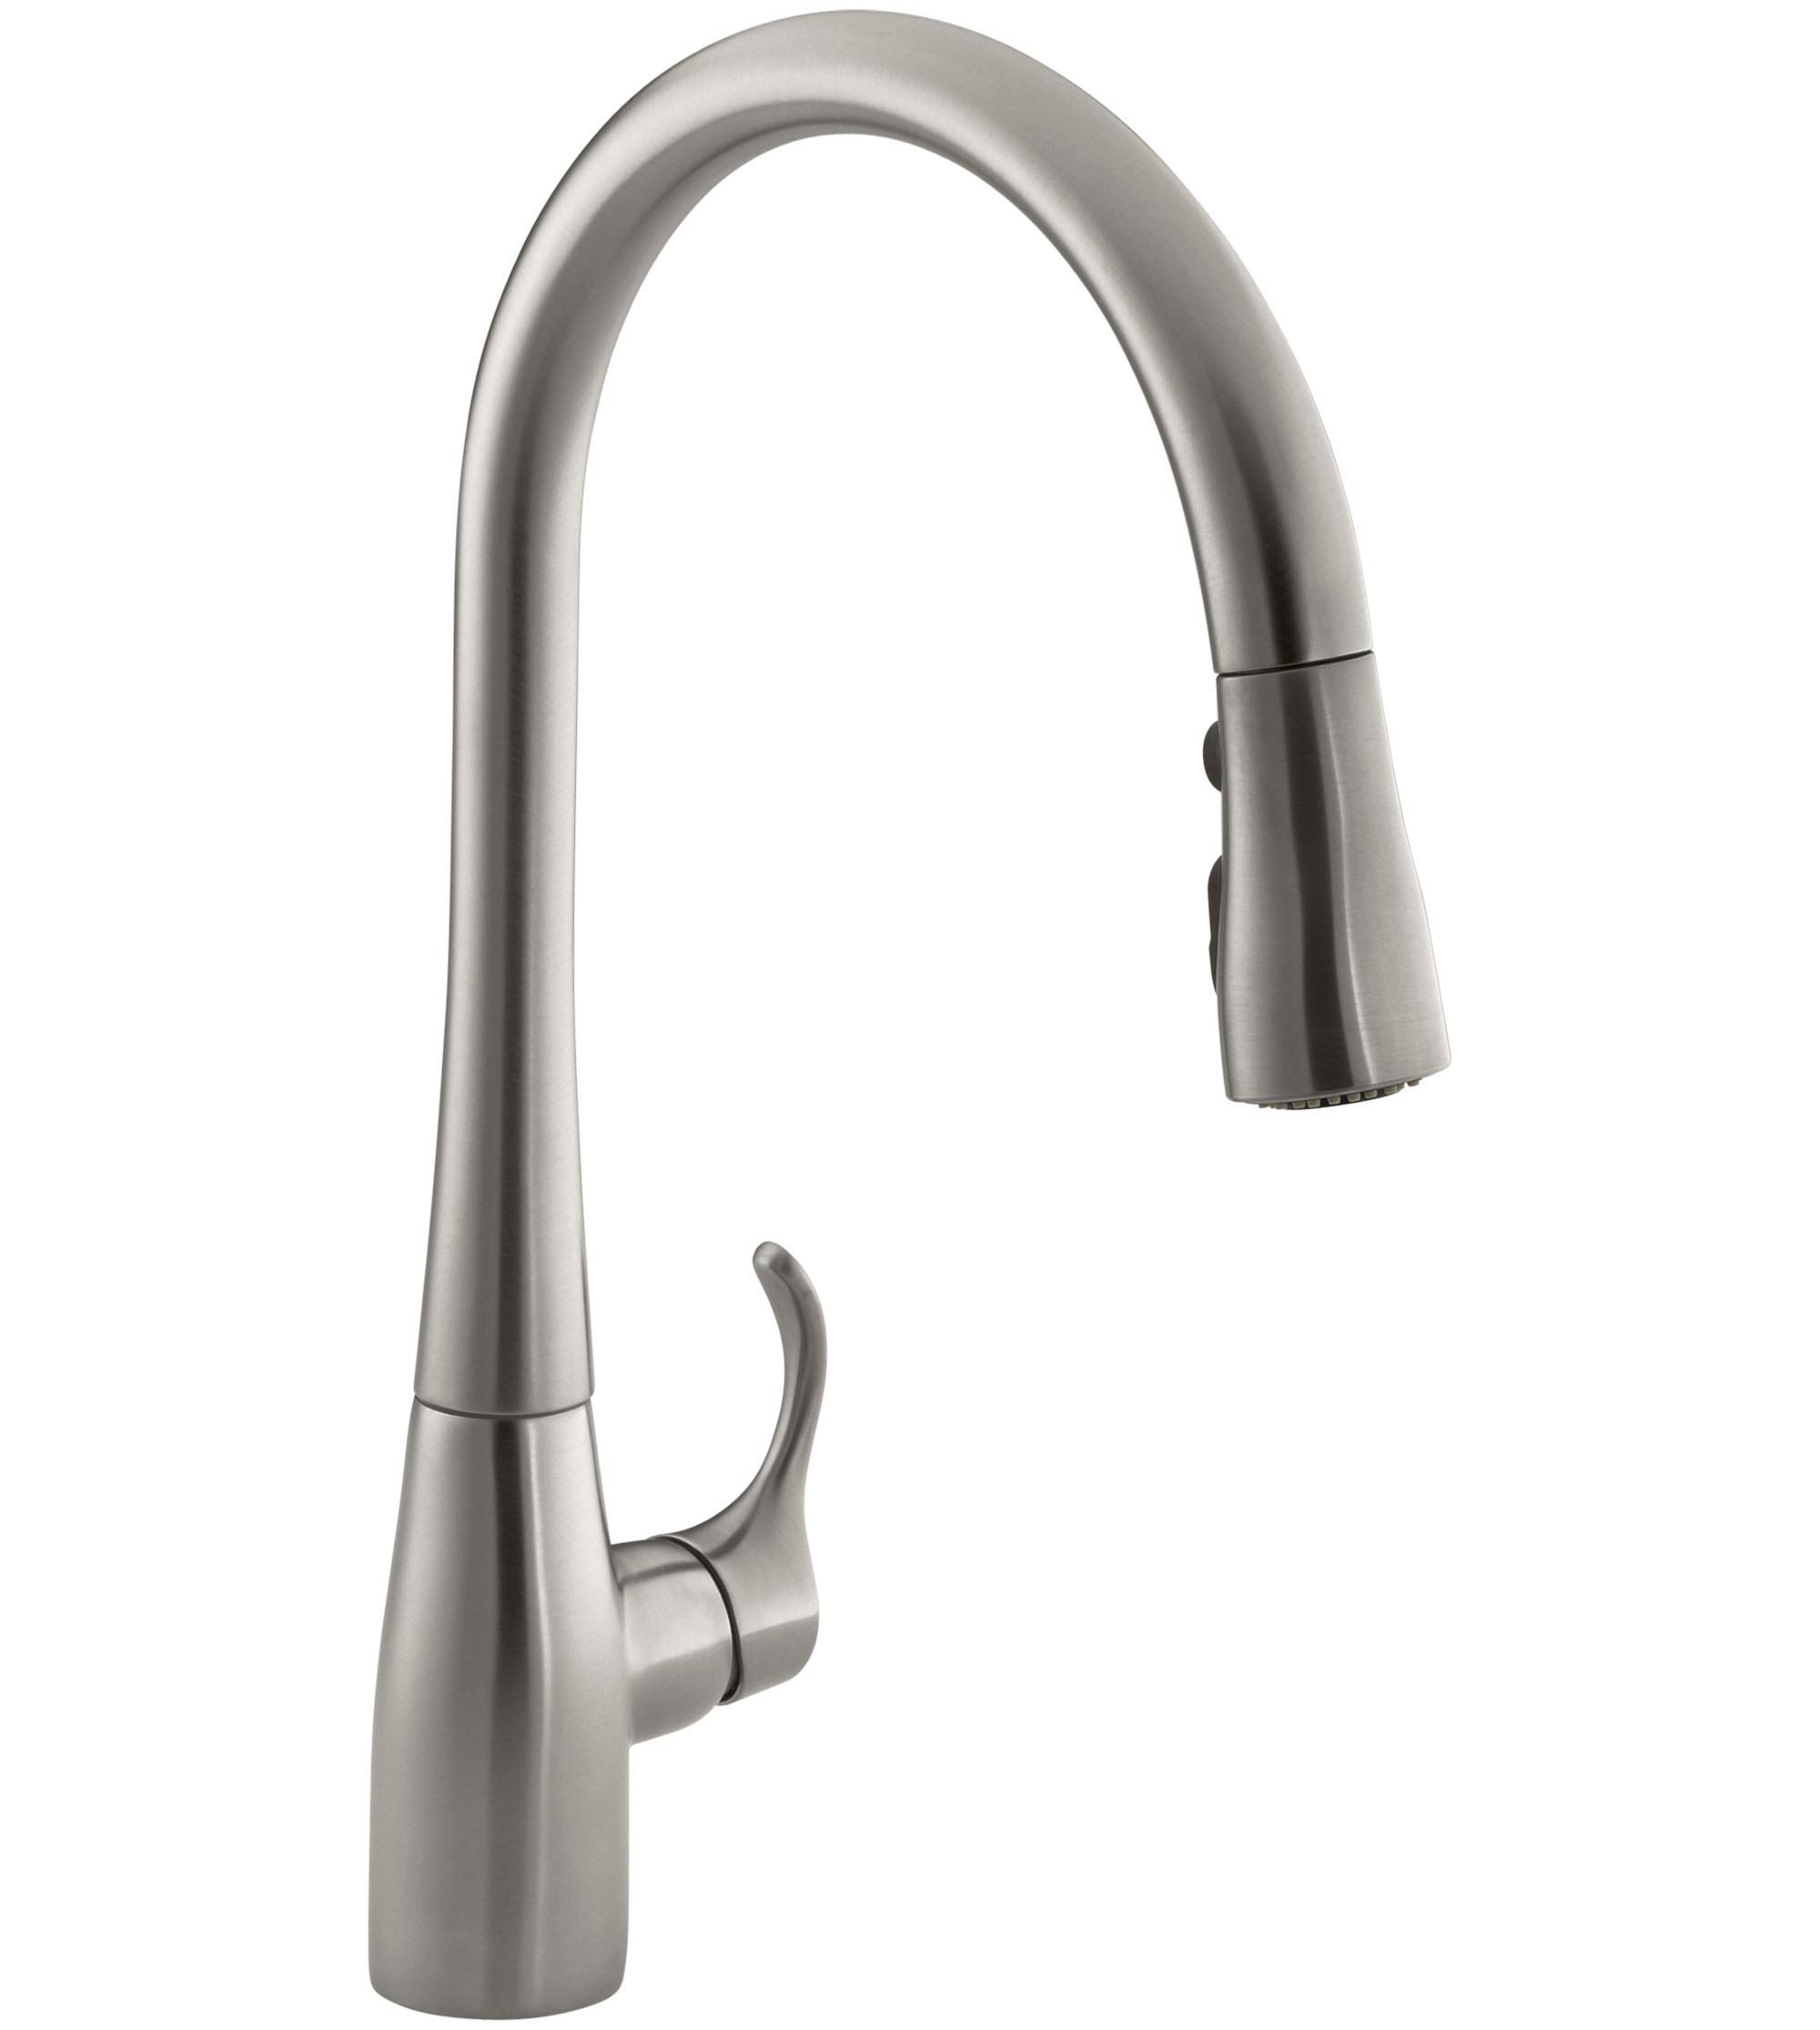 Kohler K-596-Vs Simplice High-Arch Single-Hole Or Three-Hole, Single Handle, Pull-Down Sprayer Kitchen Faucet, Vibrant Brushed Stainless With 3-Function Spray Head, Sweep Spray And Docking Spray Head Technology by Kohler